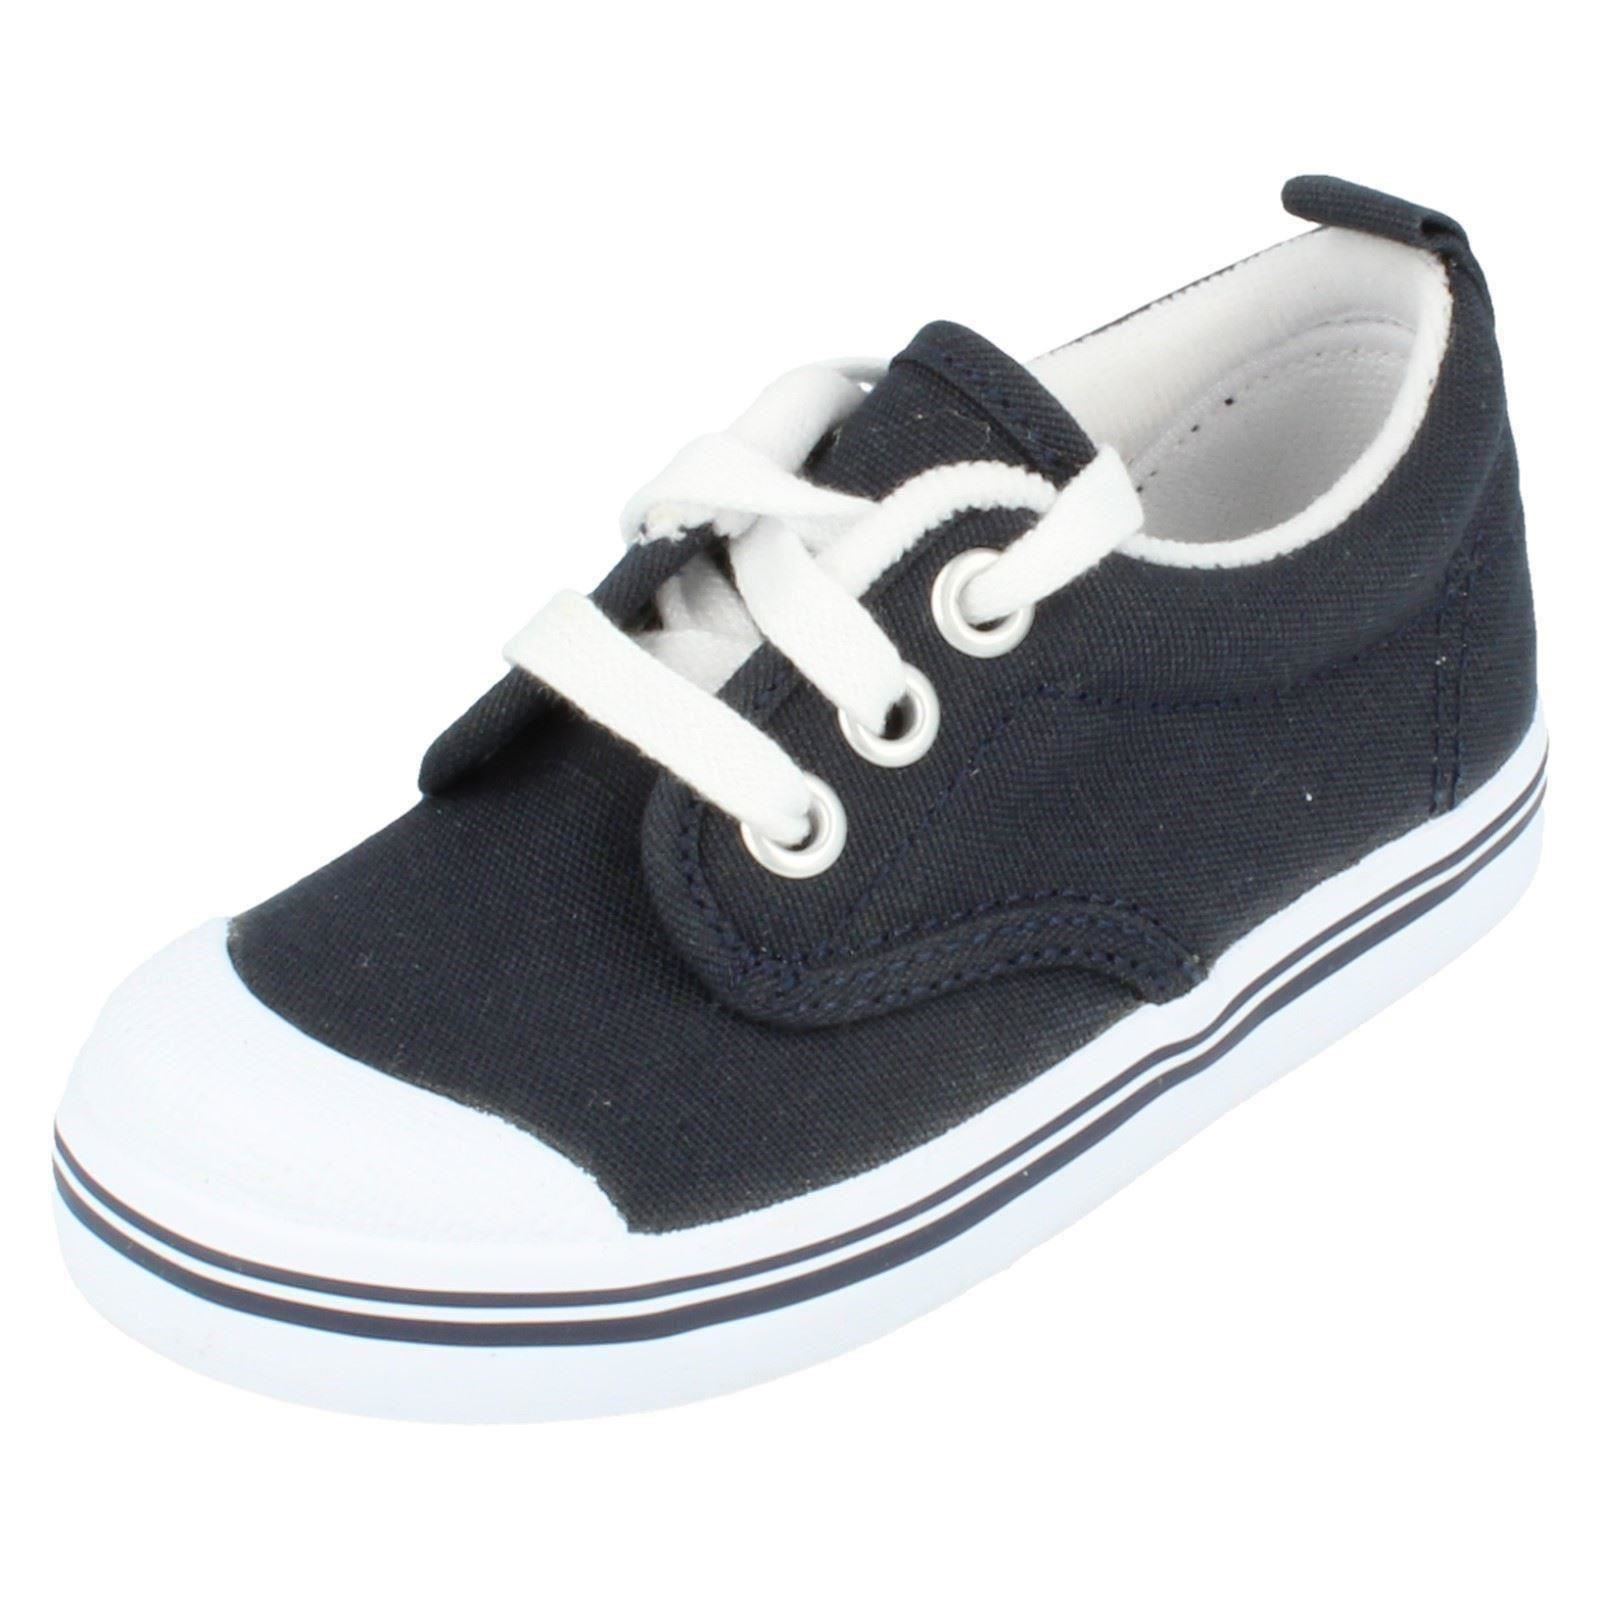 Boys Keds Navy Canvas Shoes Scooter